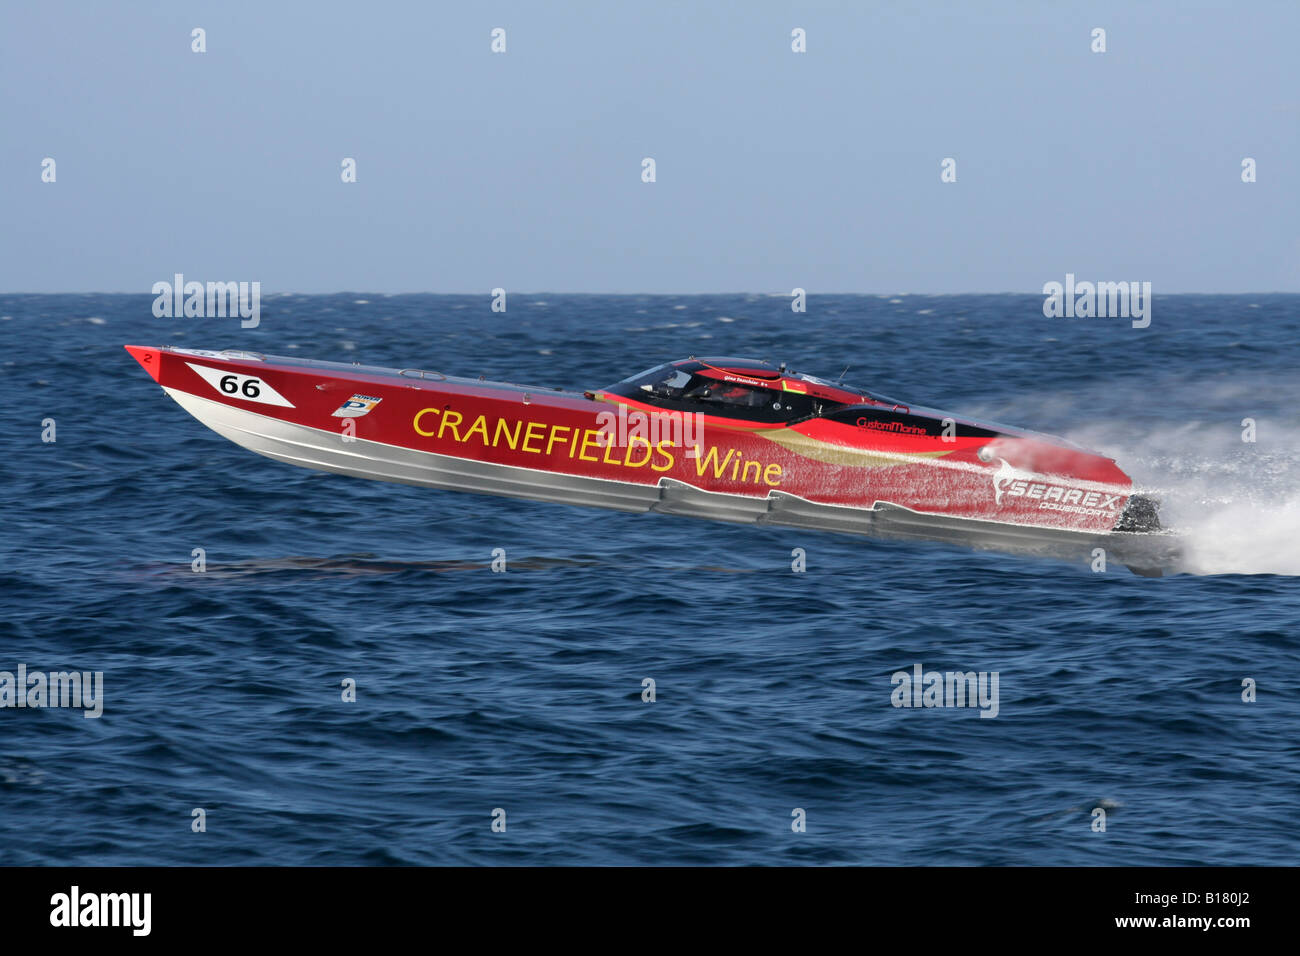 Powerboat P1 racing - Stock Image